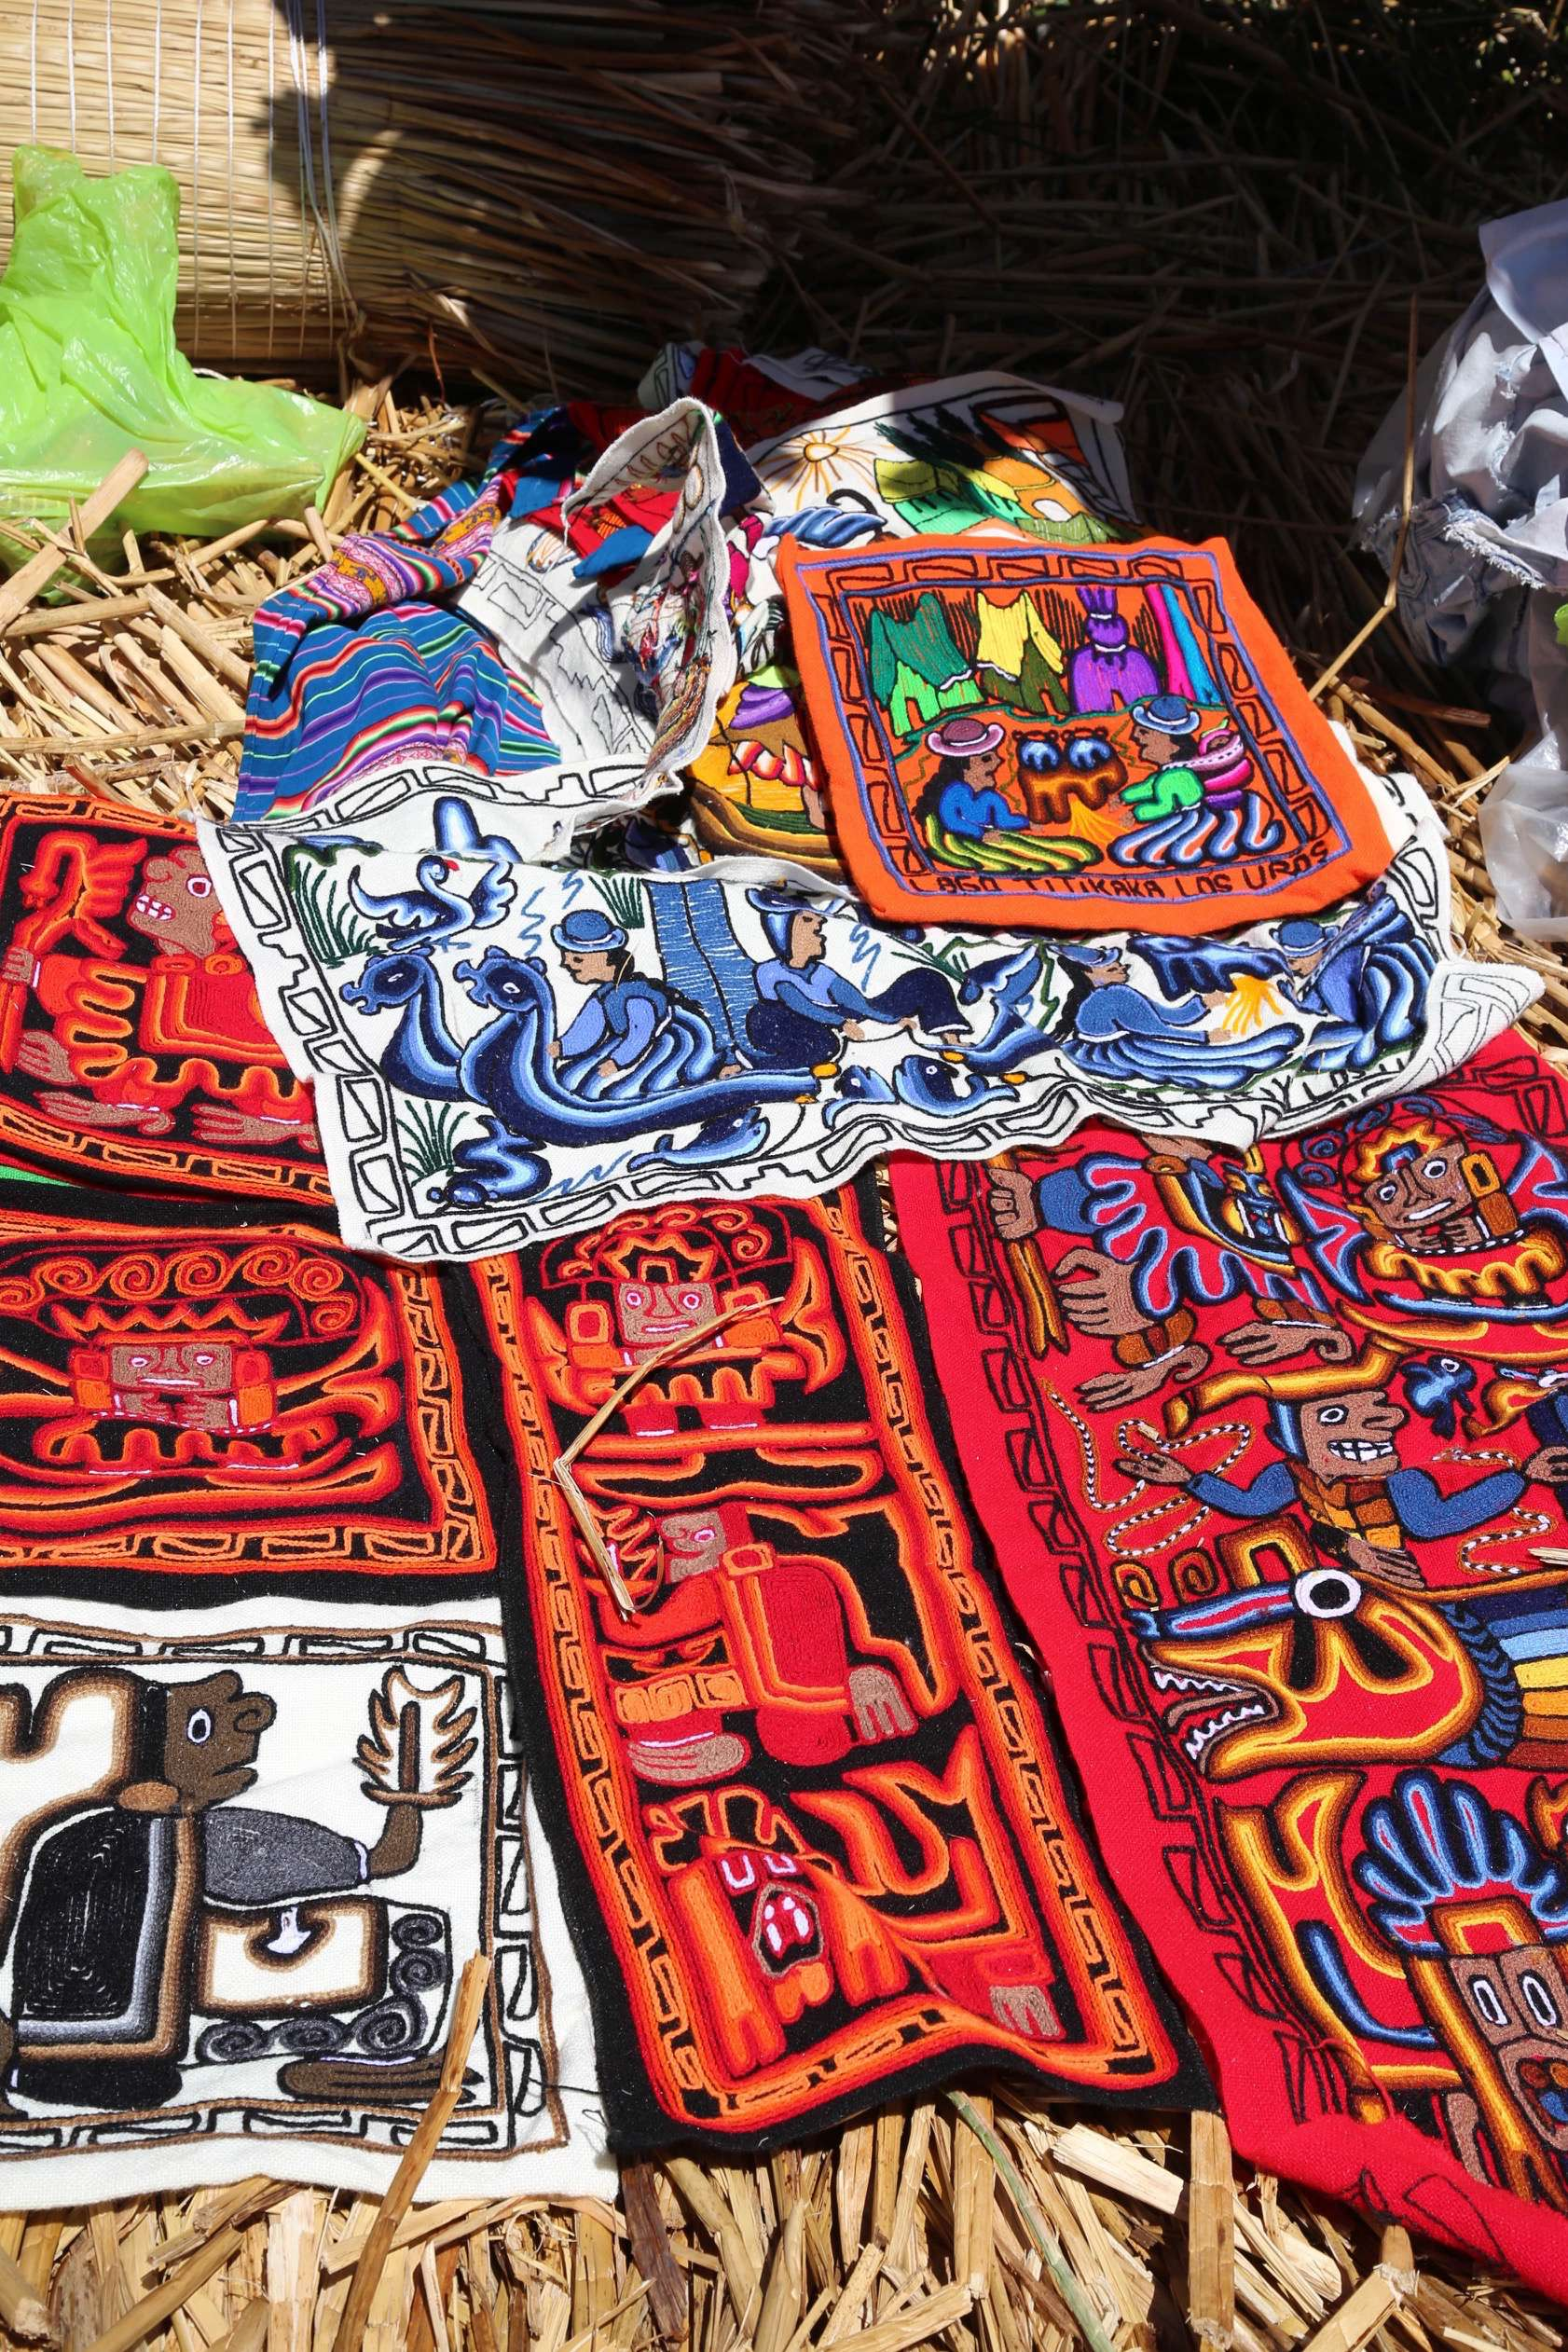 A sampling of weaving and textile goods for sale.